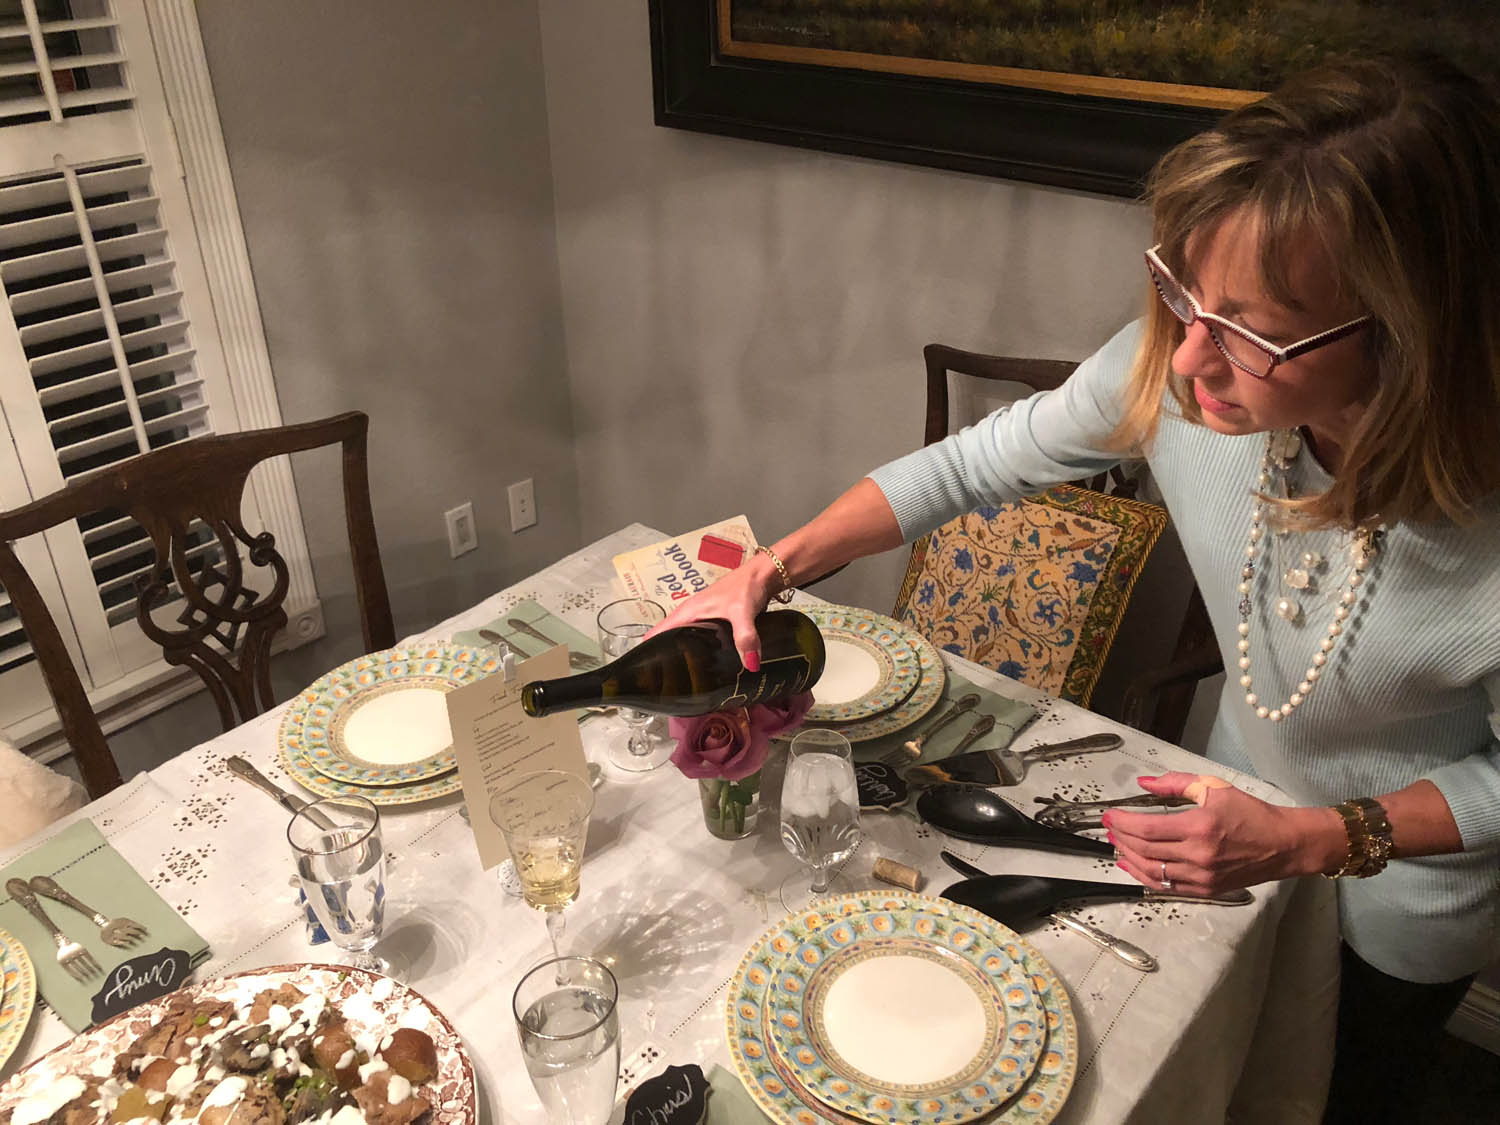 Ashley pouring wine into wine glasses at a dining table set with china